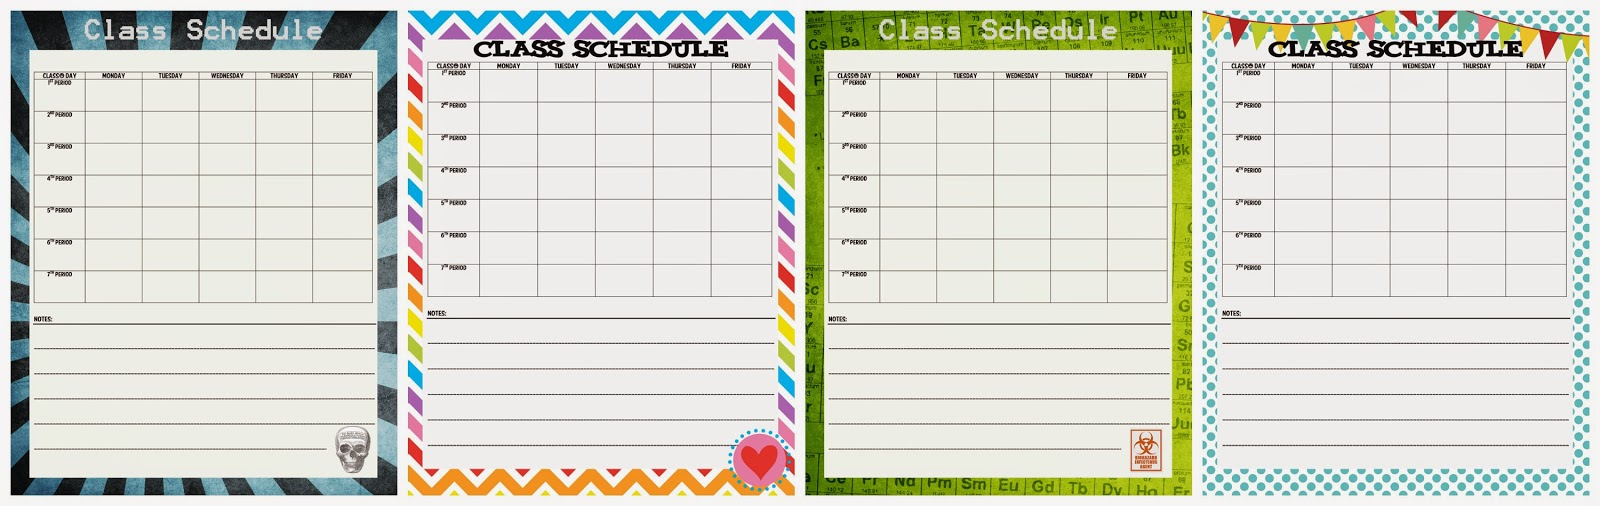 Junior High class schedule printable www.freetimefrolics.com #printable #juniorhigh